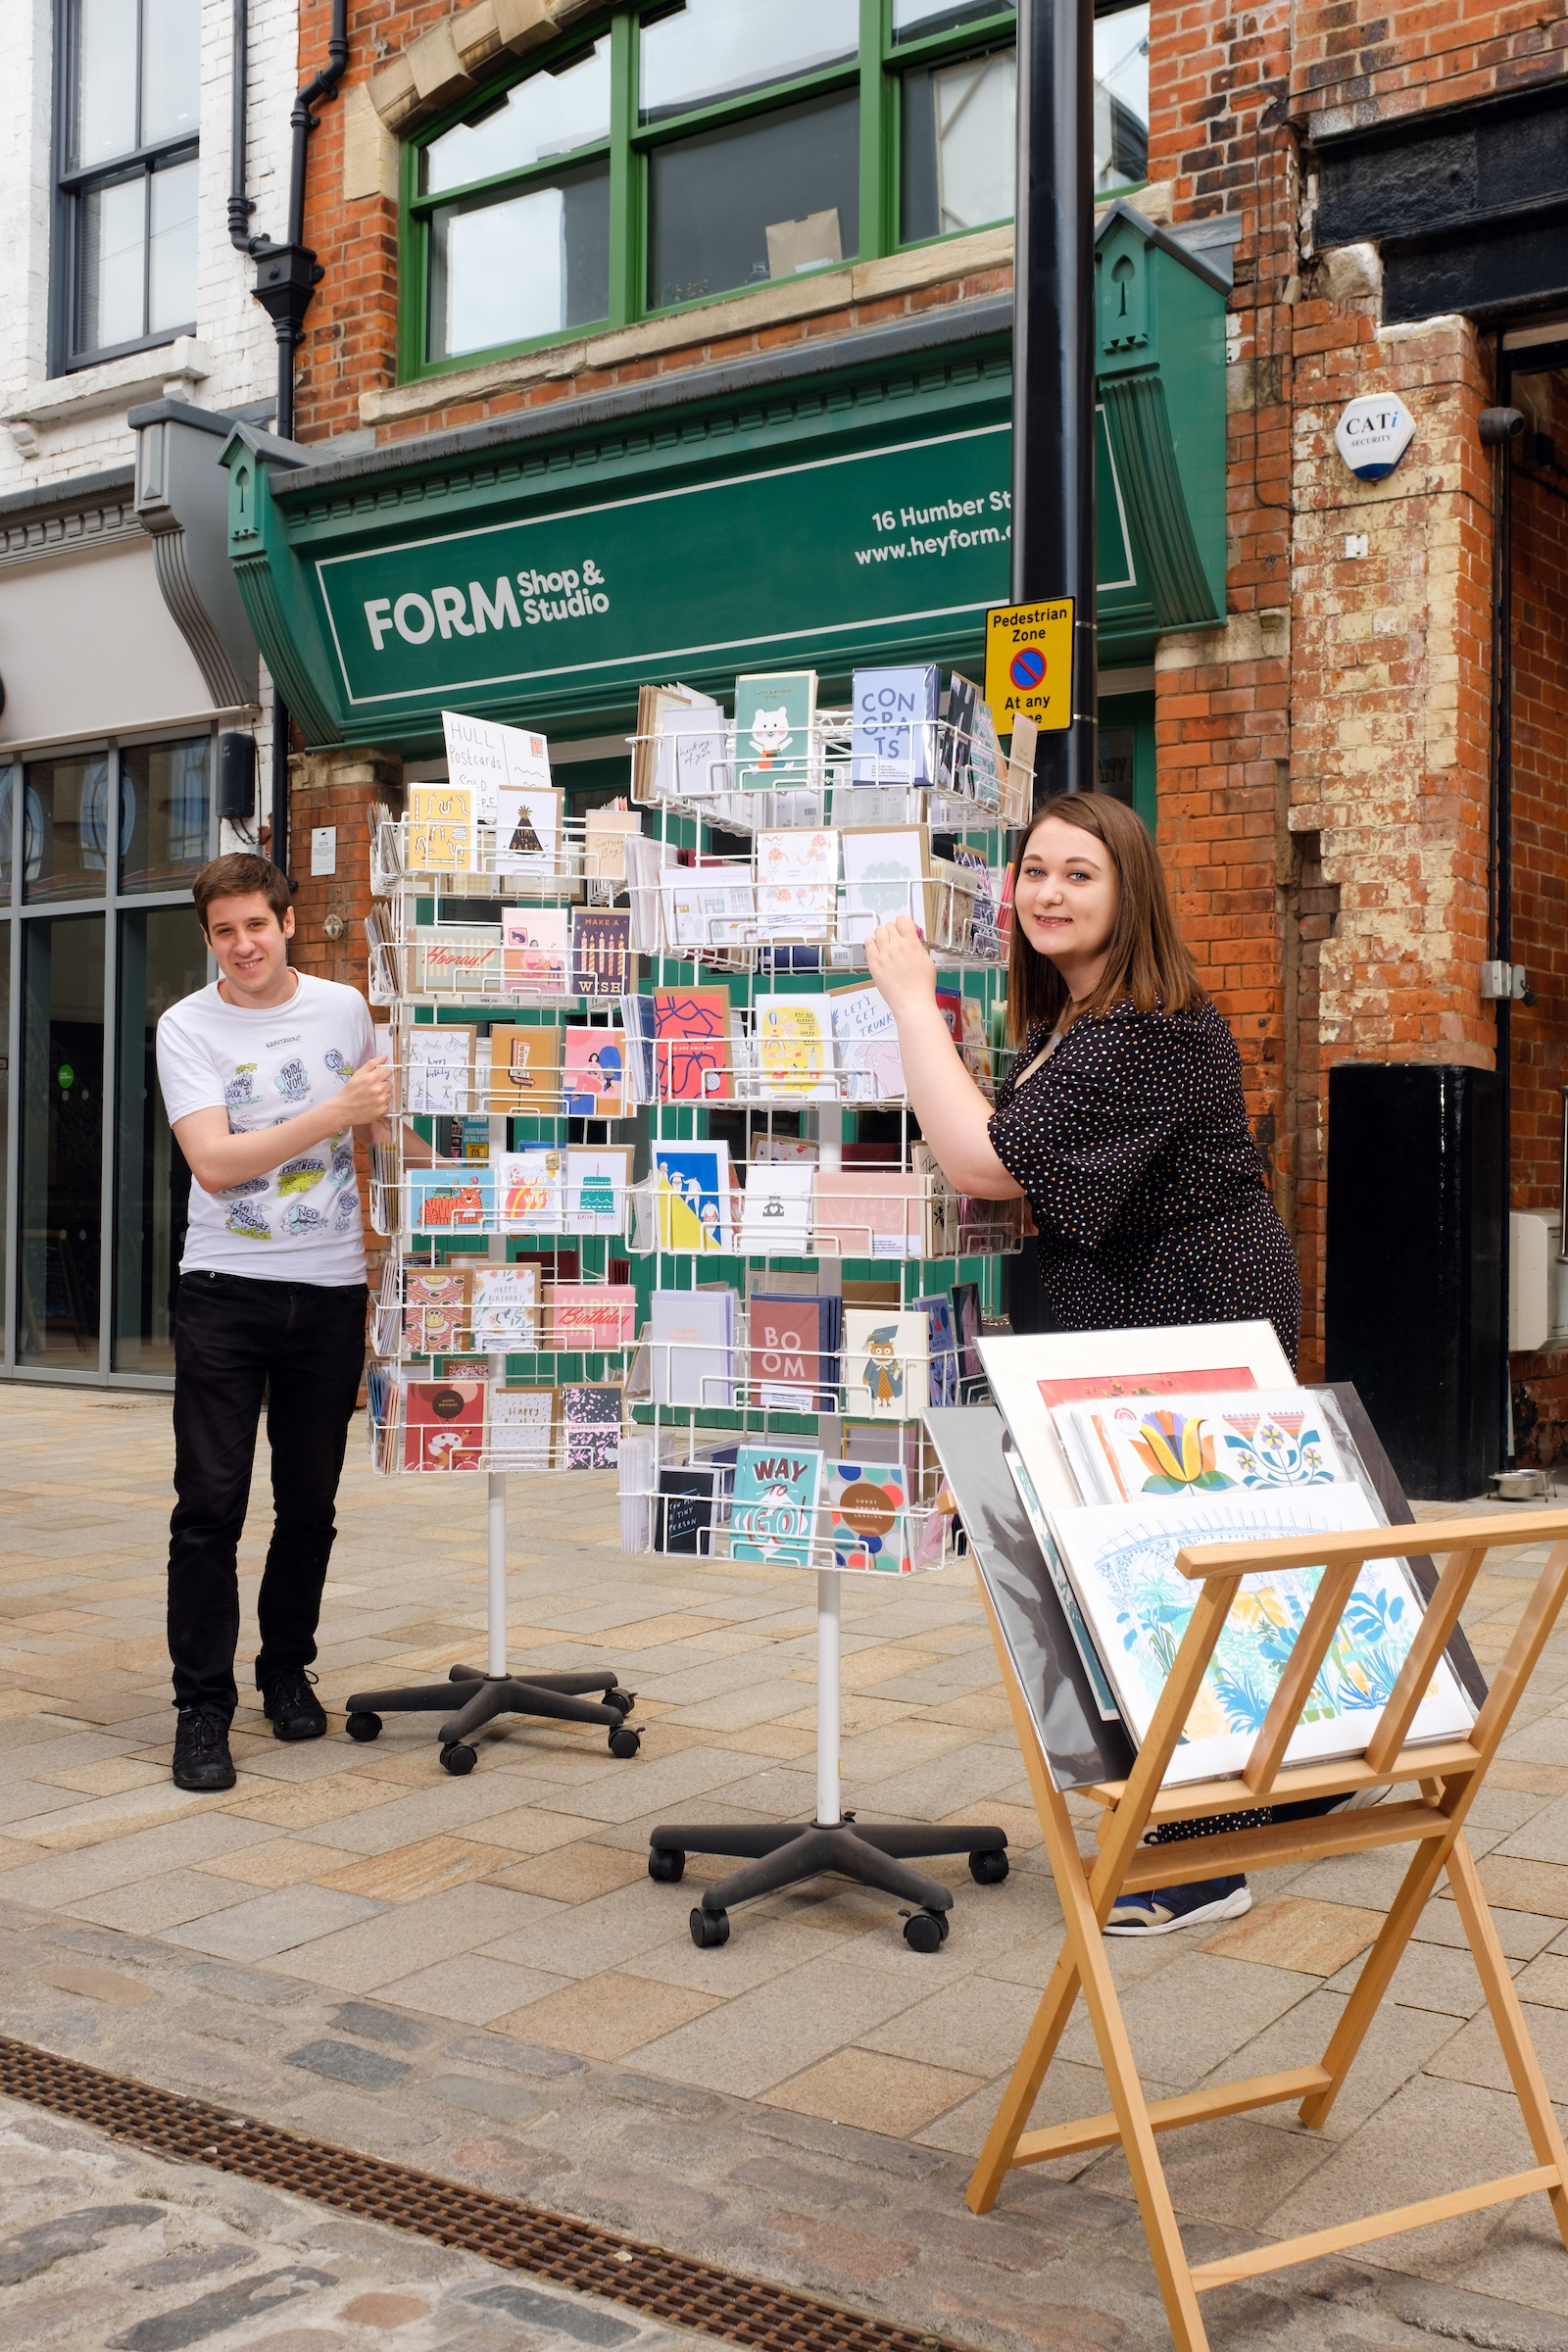 Joseph and Alice outside their current shop on Humber Street.